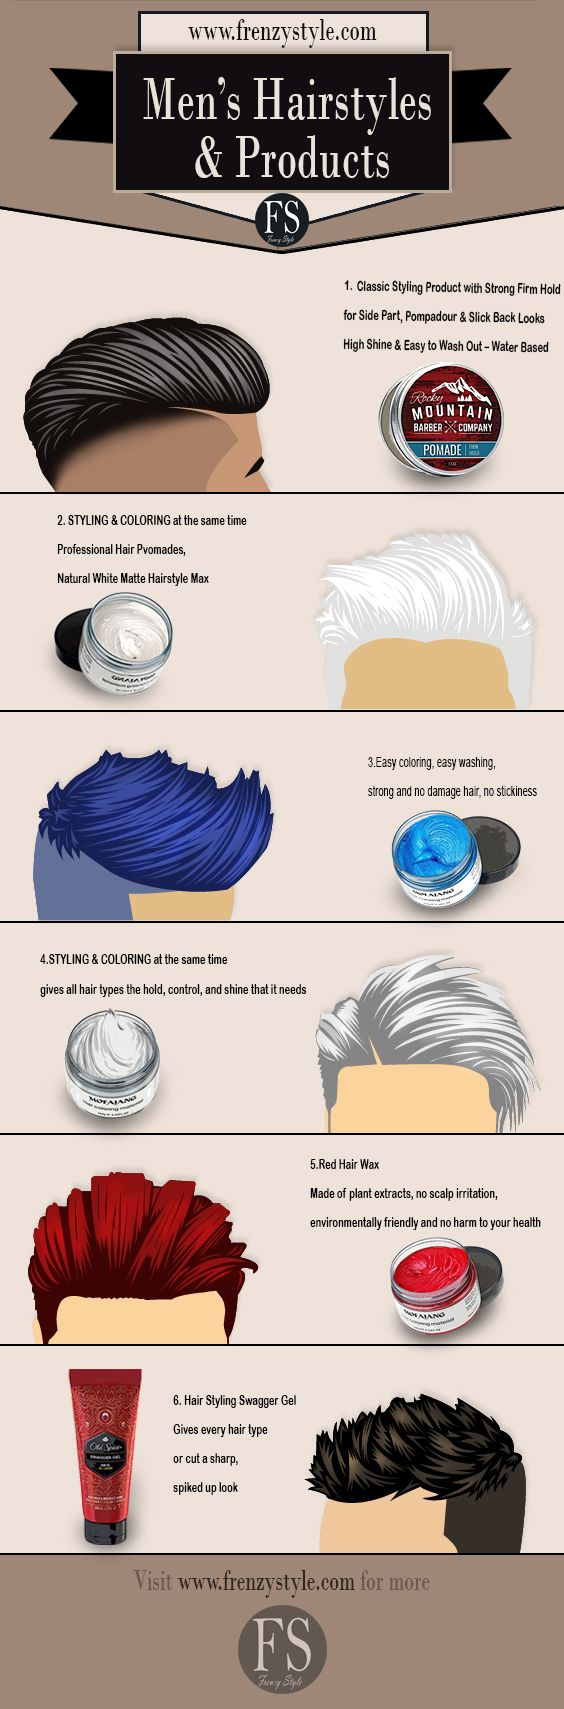 6 Popular Hairstyles and Haircuts for guys and how to make them